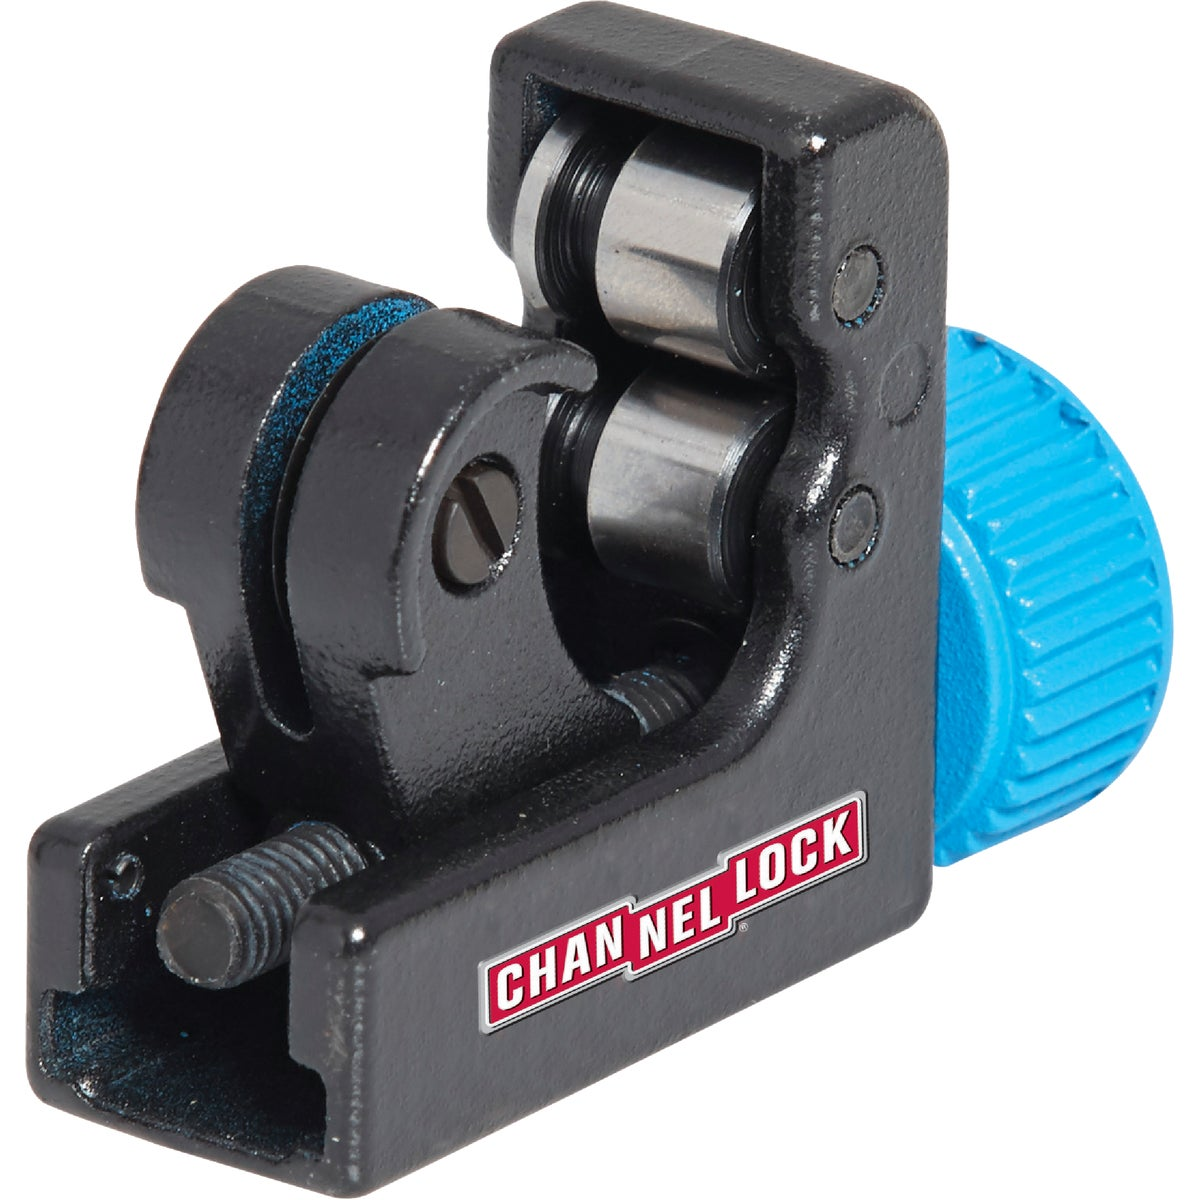 MINI TUBING CUTTER - W-4204 by Channellock Products